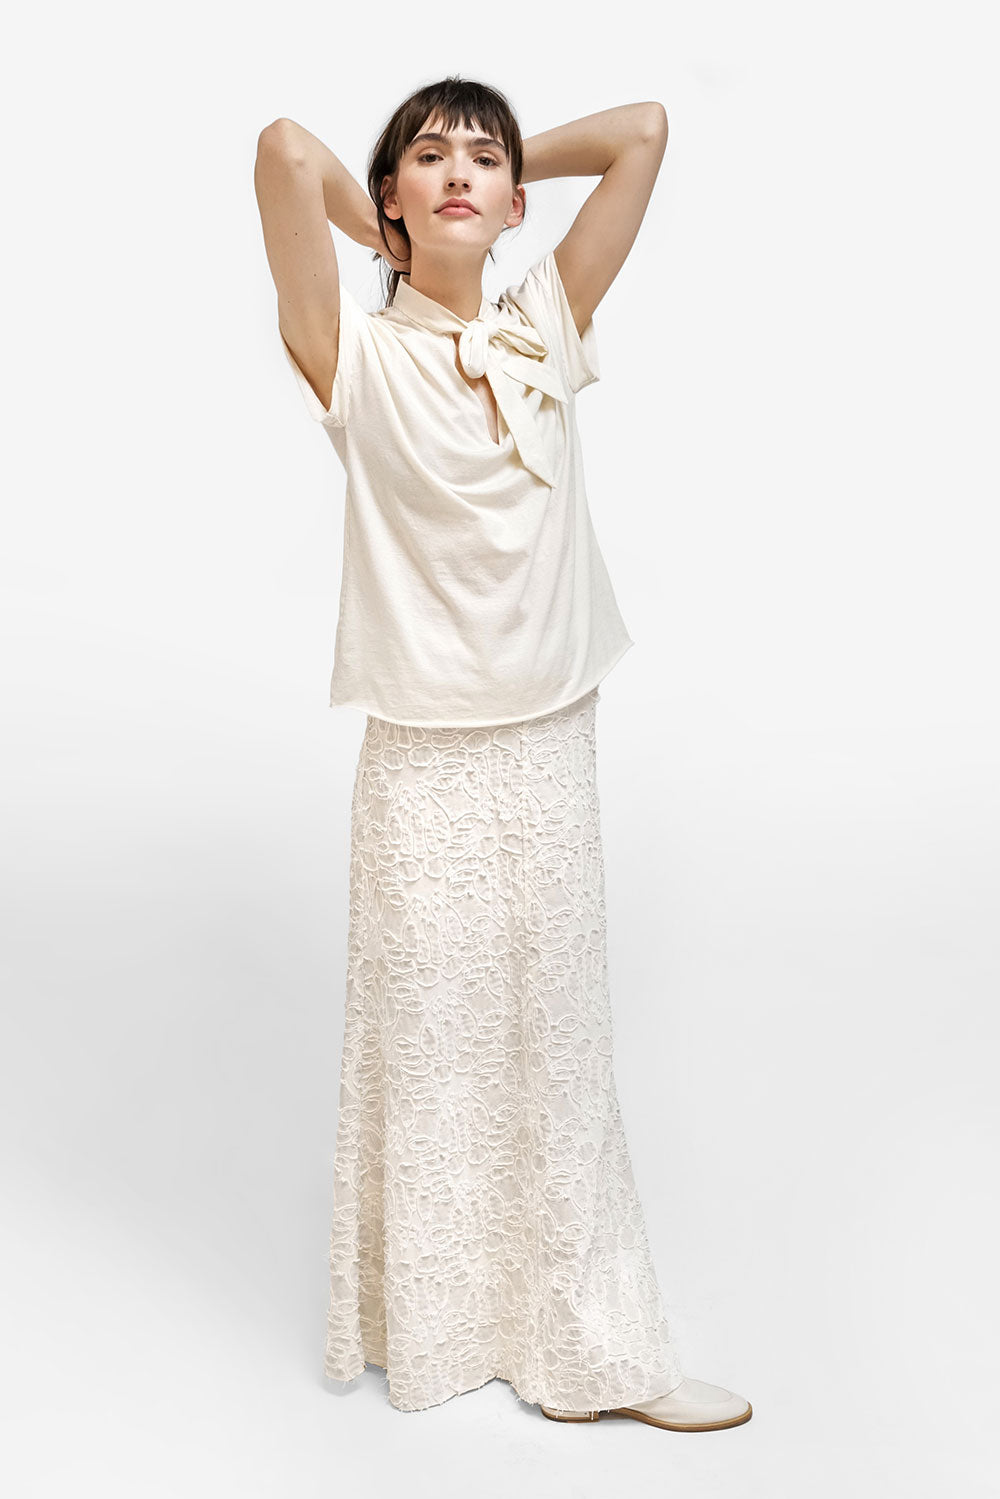 Alabama Chanin Anaise Skirt Women's Long Skirt with Train in Organic Cotton with Lace Applique Print